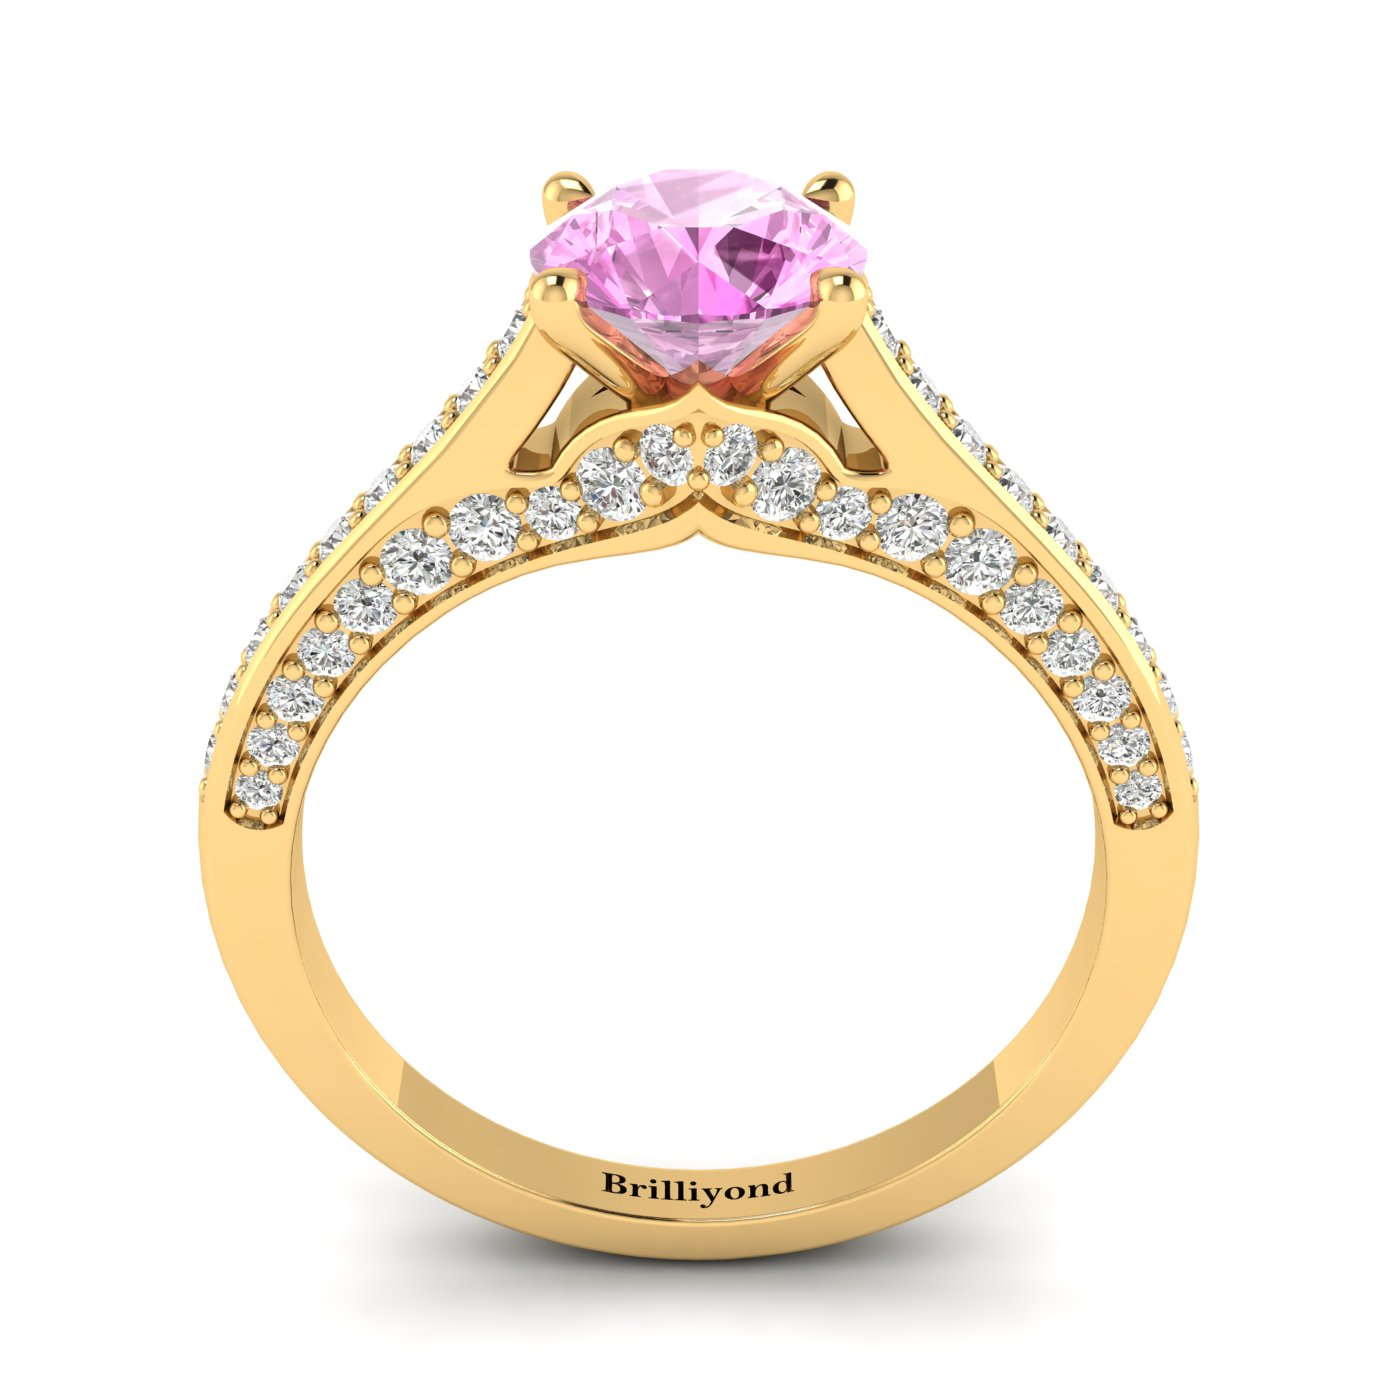 Pink Sapphire Yellow Gold Brilliant Cut Engagement Ring Stargate_image2